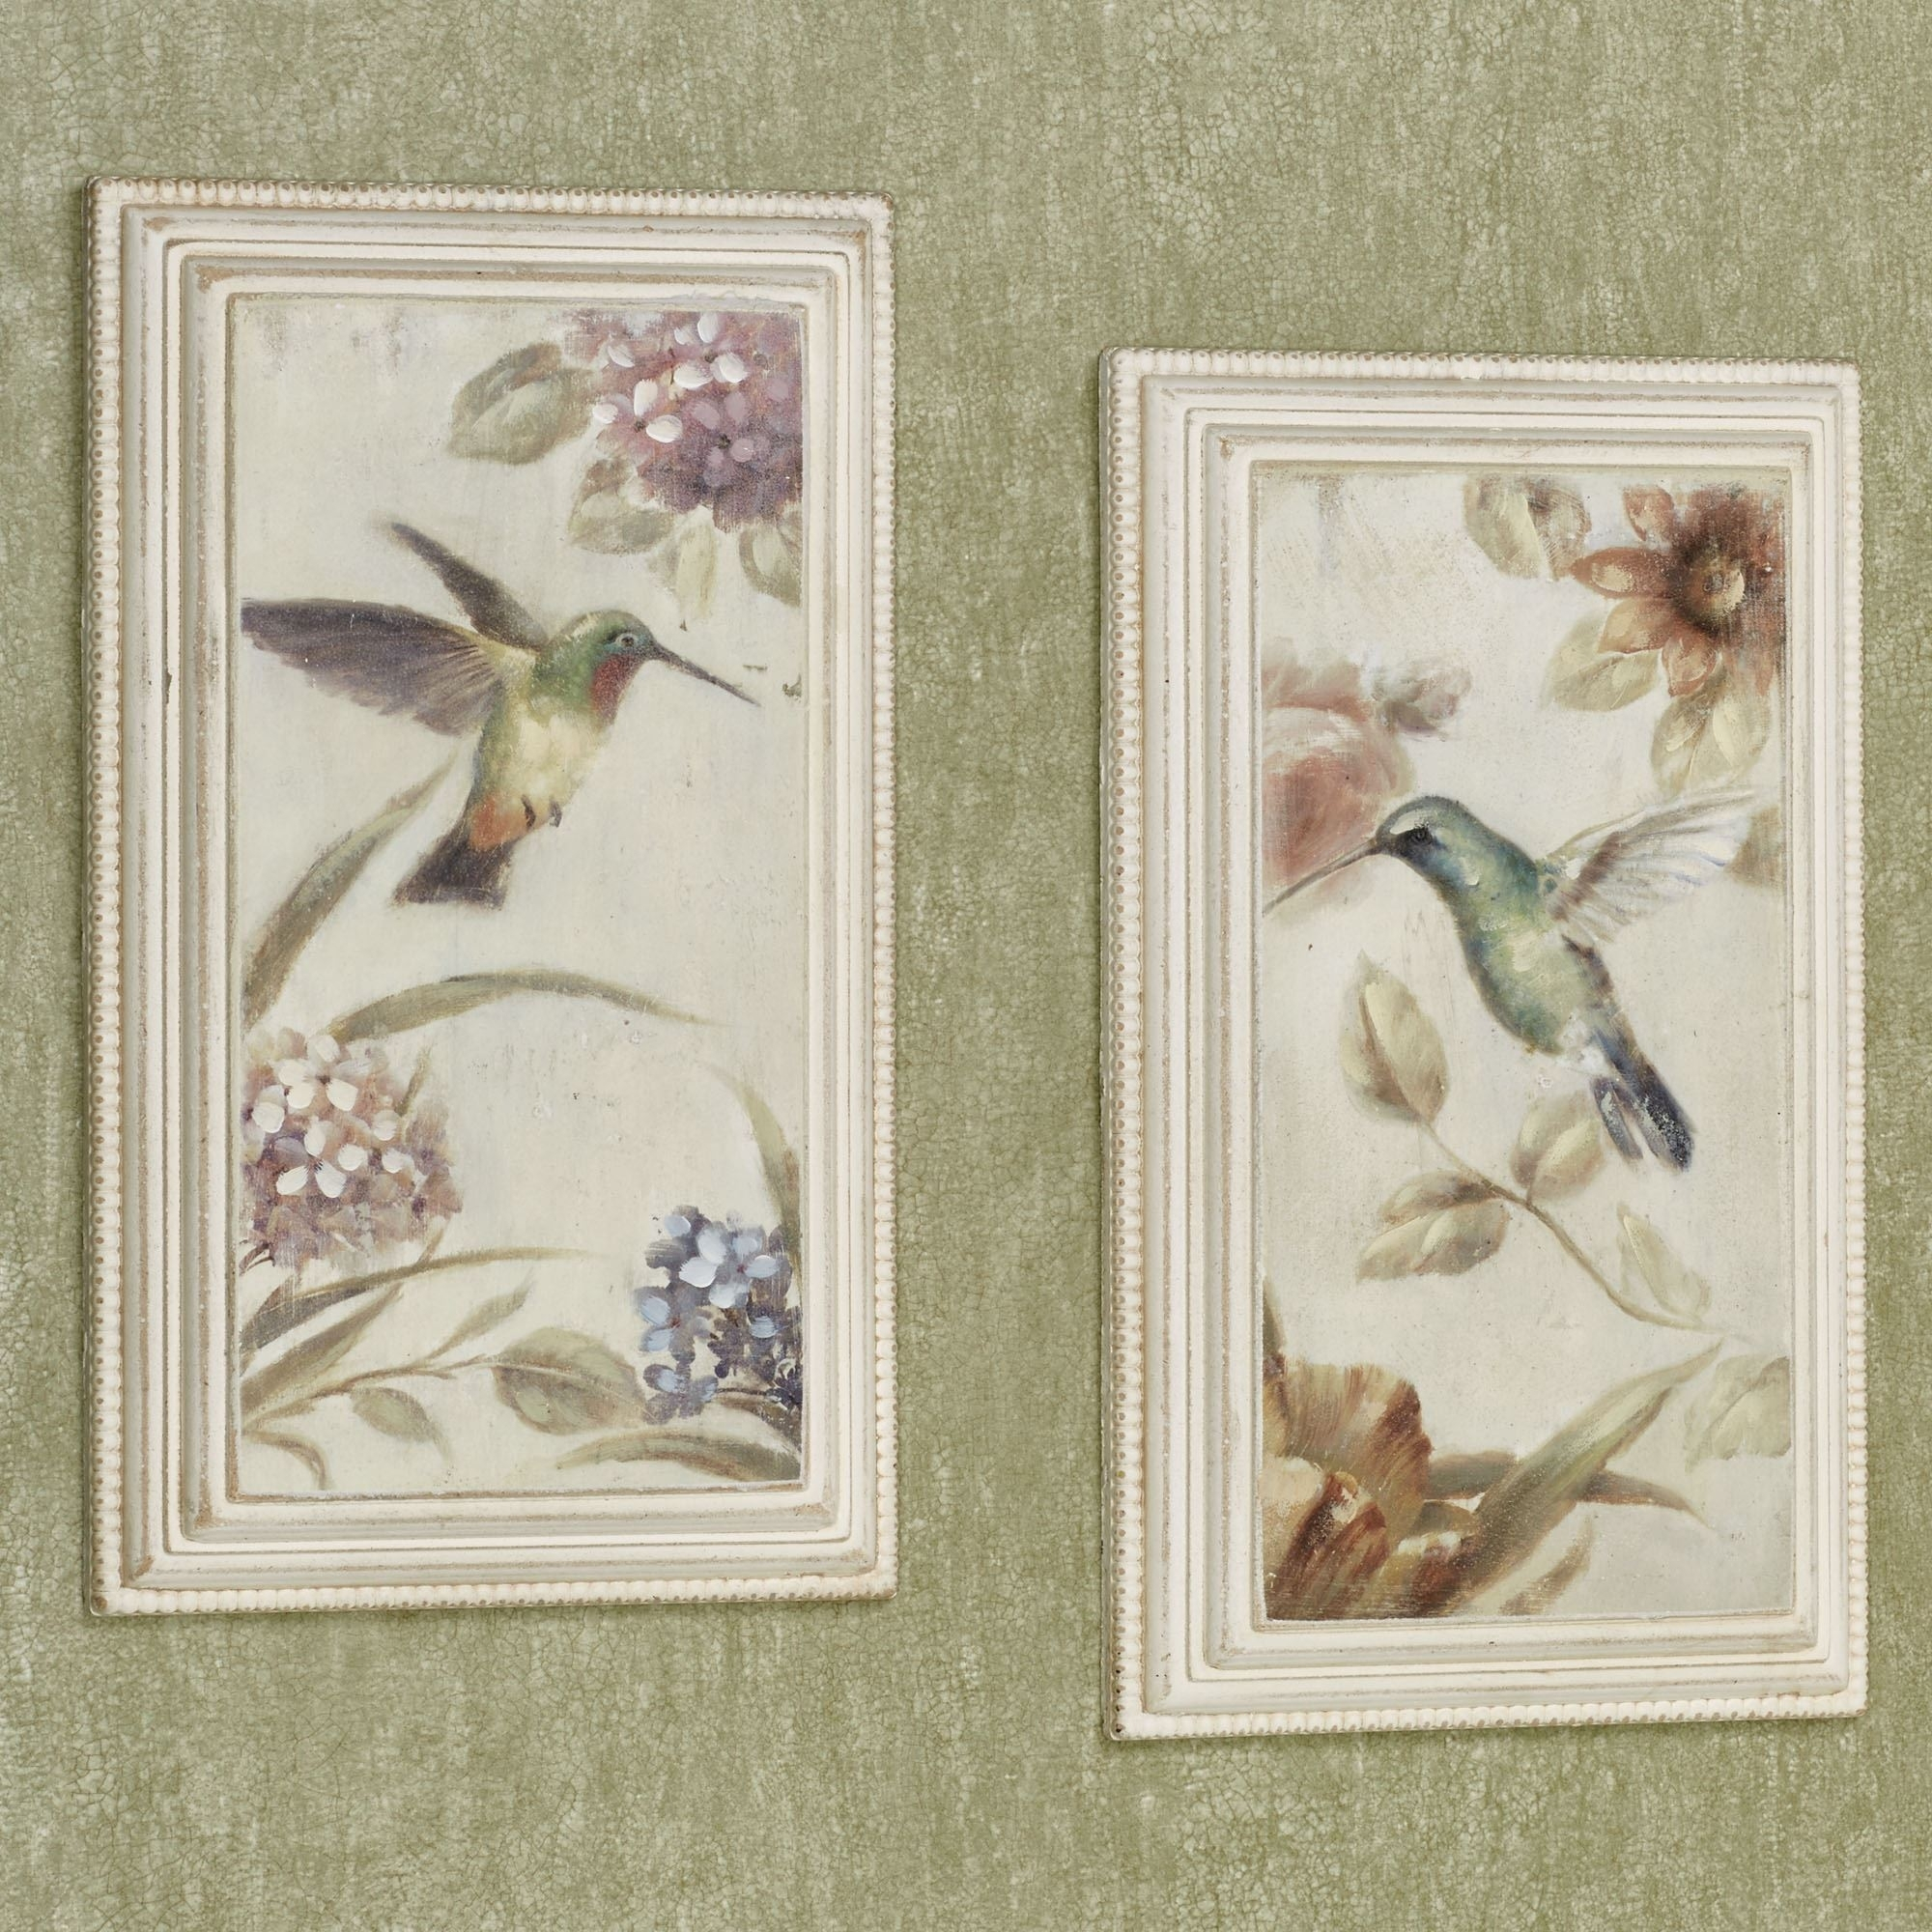 Framed Art Prints | Touch Of Class For 2018 Birds Framed Art Prints (View 5 of 15)